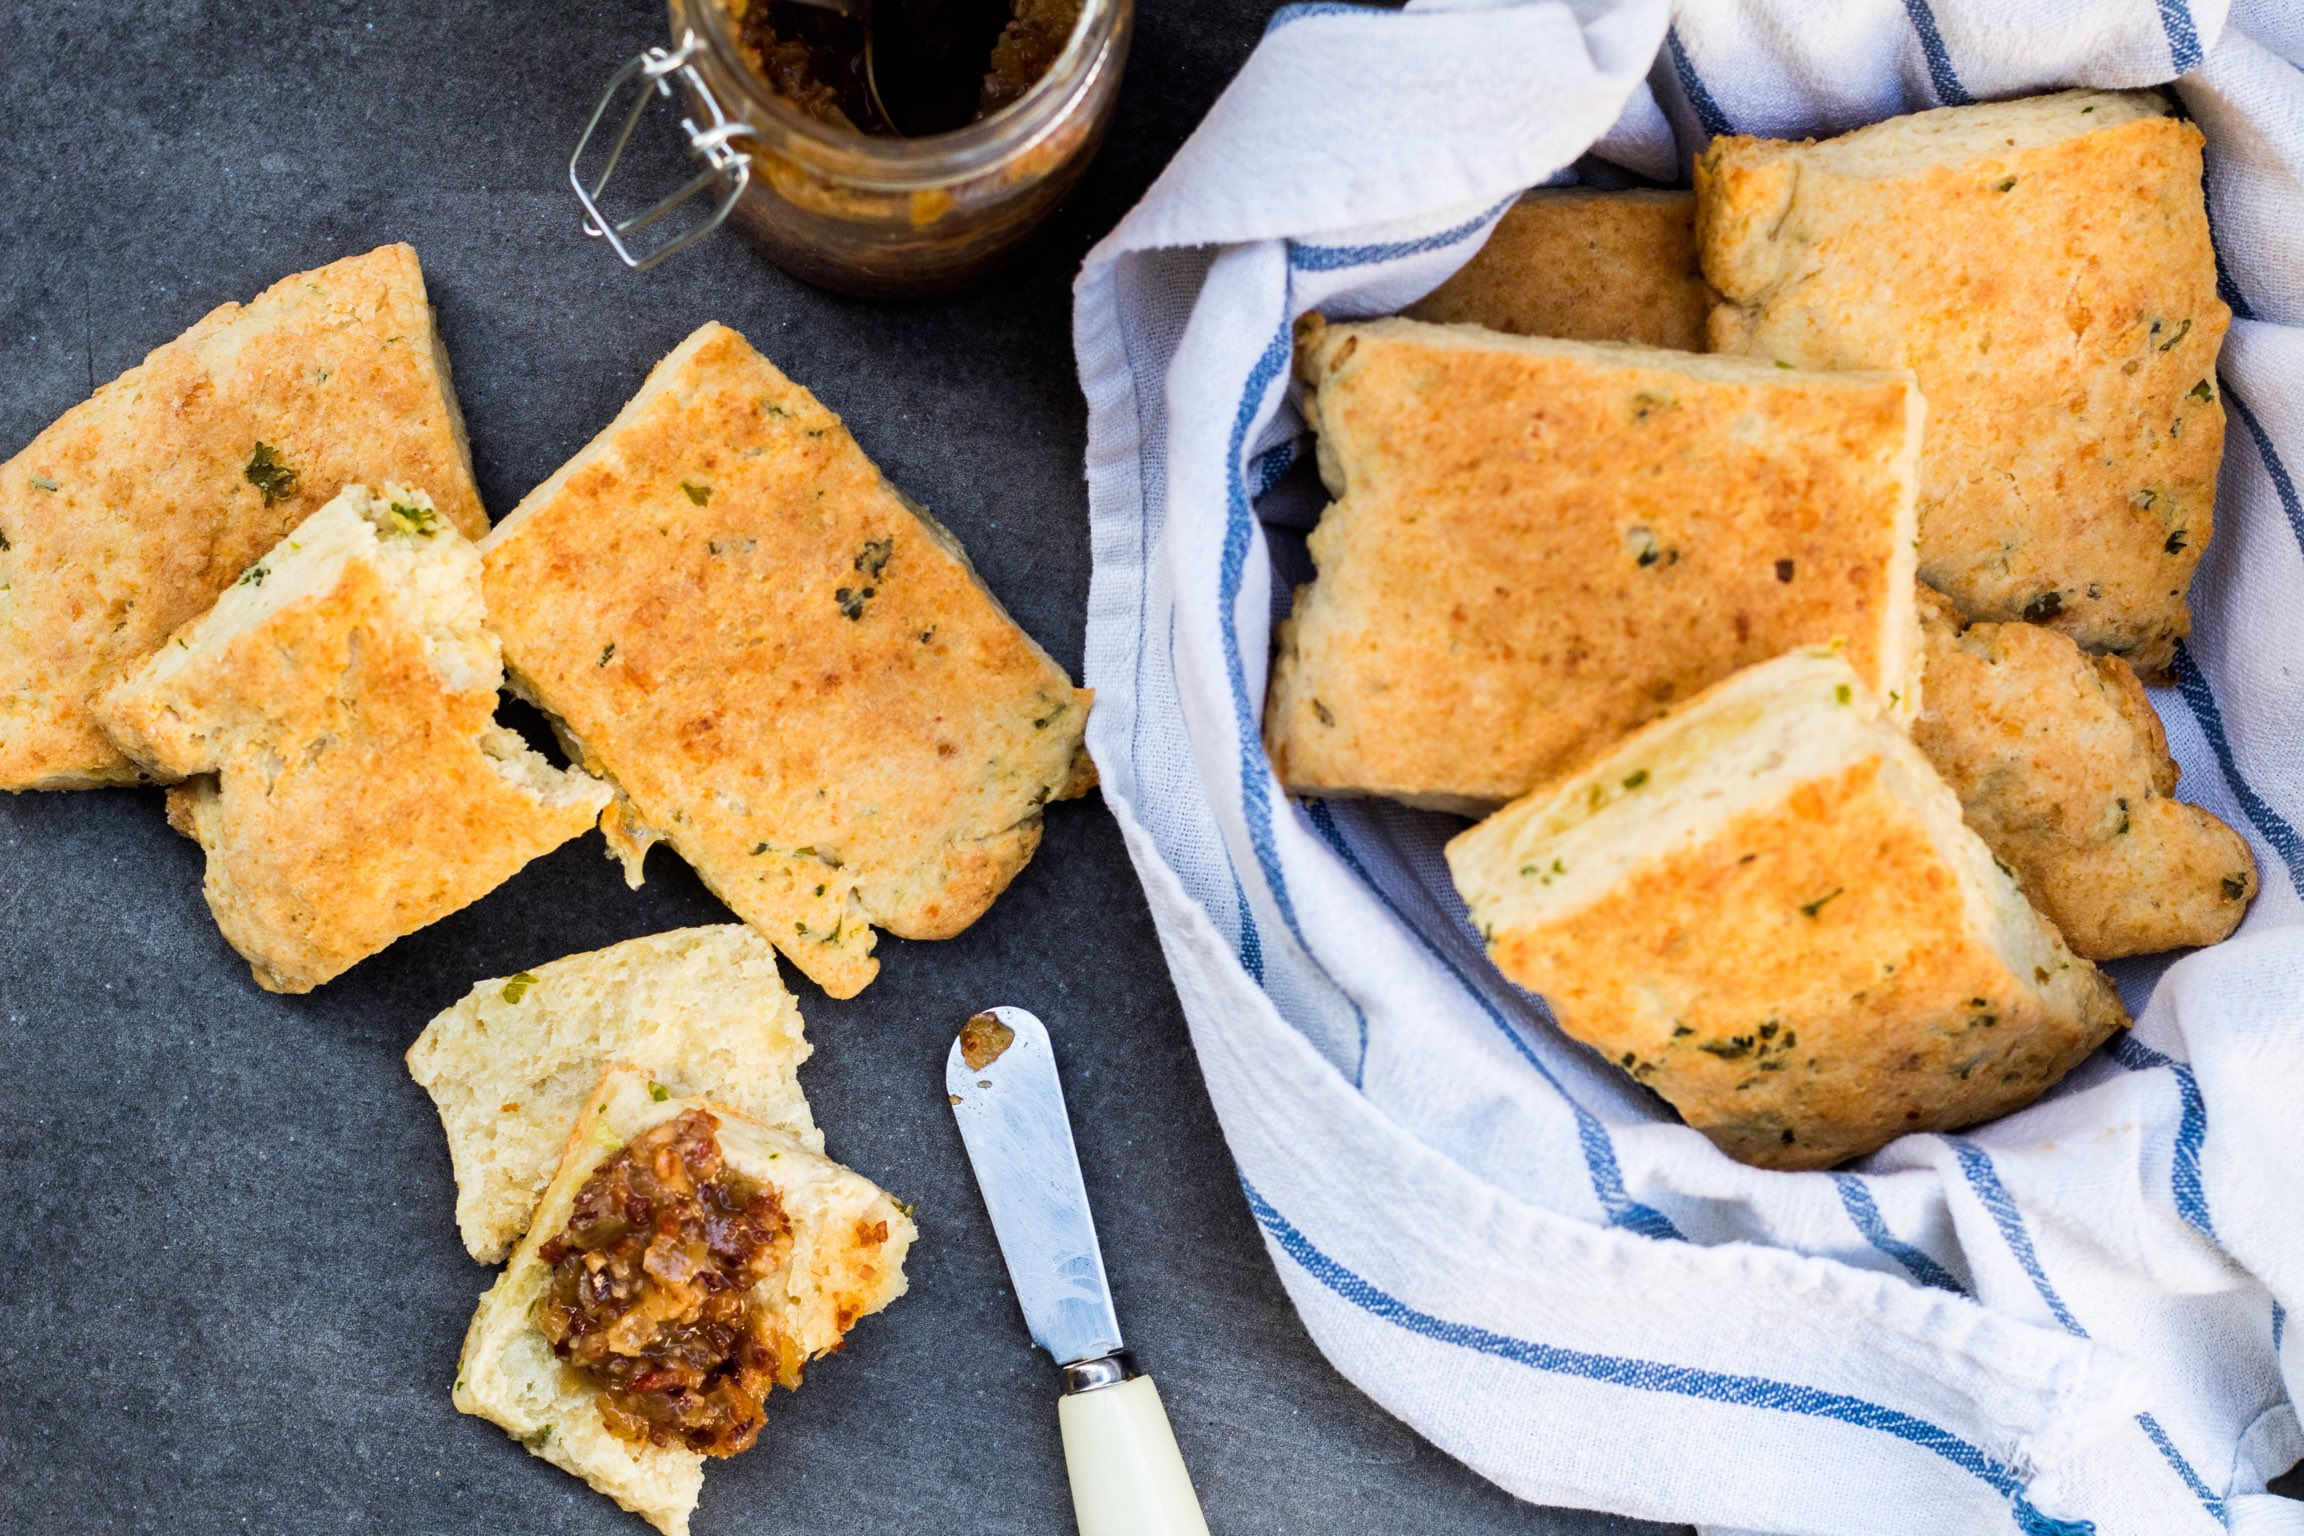 Cheddar chive and herb biscuits and bacon bourbon jam